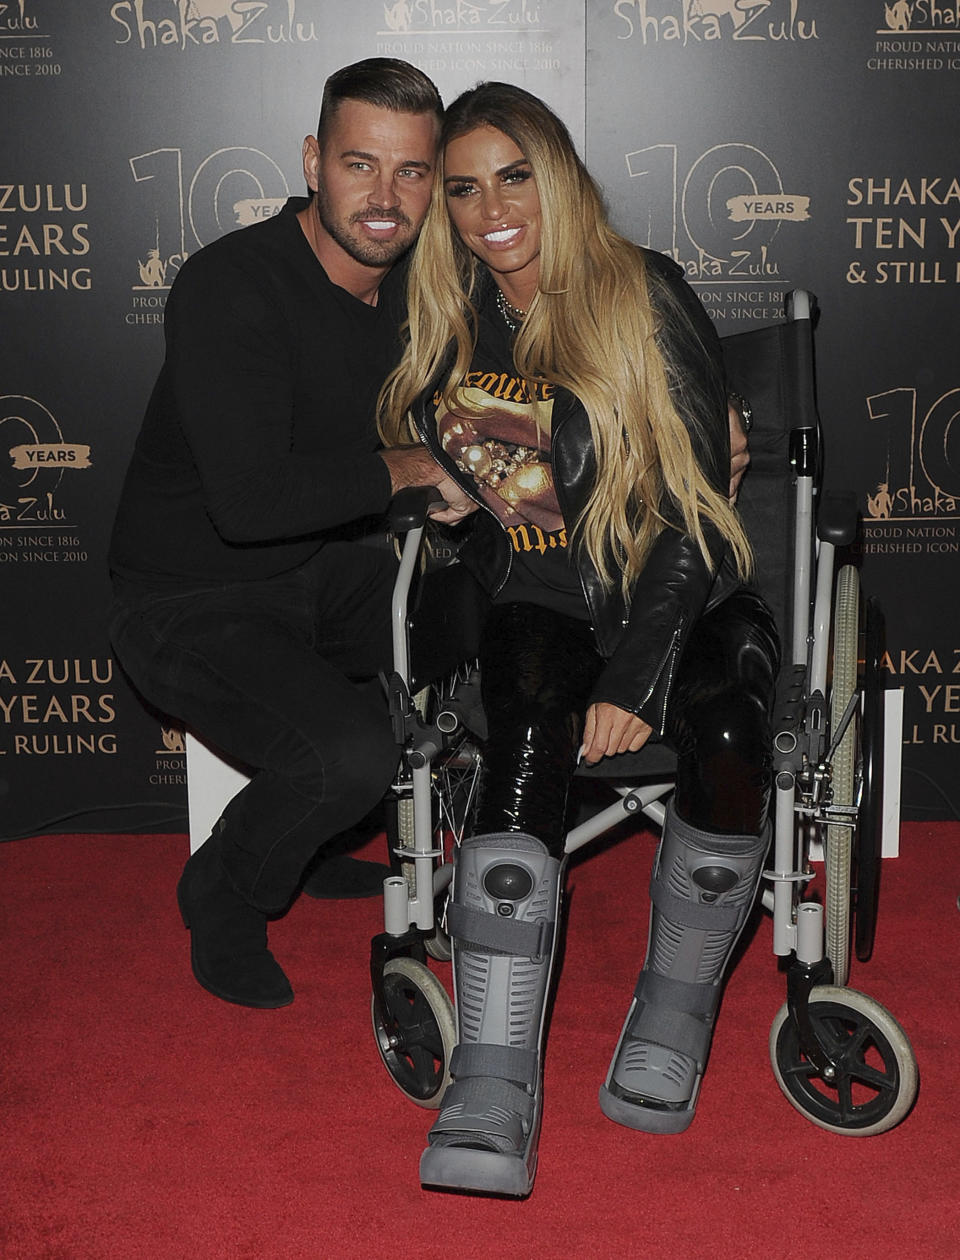 Photo by: zz/KGC-305/STAR MAX/IPx 2020 9/10/20 Katie Price and her boyfriend Carl Woods at the 10th Anniversary Celebration for Shaka Zulu Restaurant held on September 10, 2020 in Camden. Katie is confined to a wheelchair after suffering two broken ankles in an accidental fall from a 25 foot wall at a theme park while on holiday in Turkey earlier in the summer. (London, England, UK)